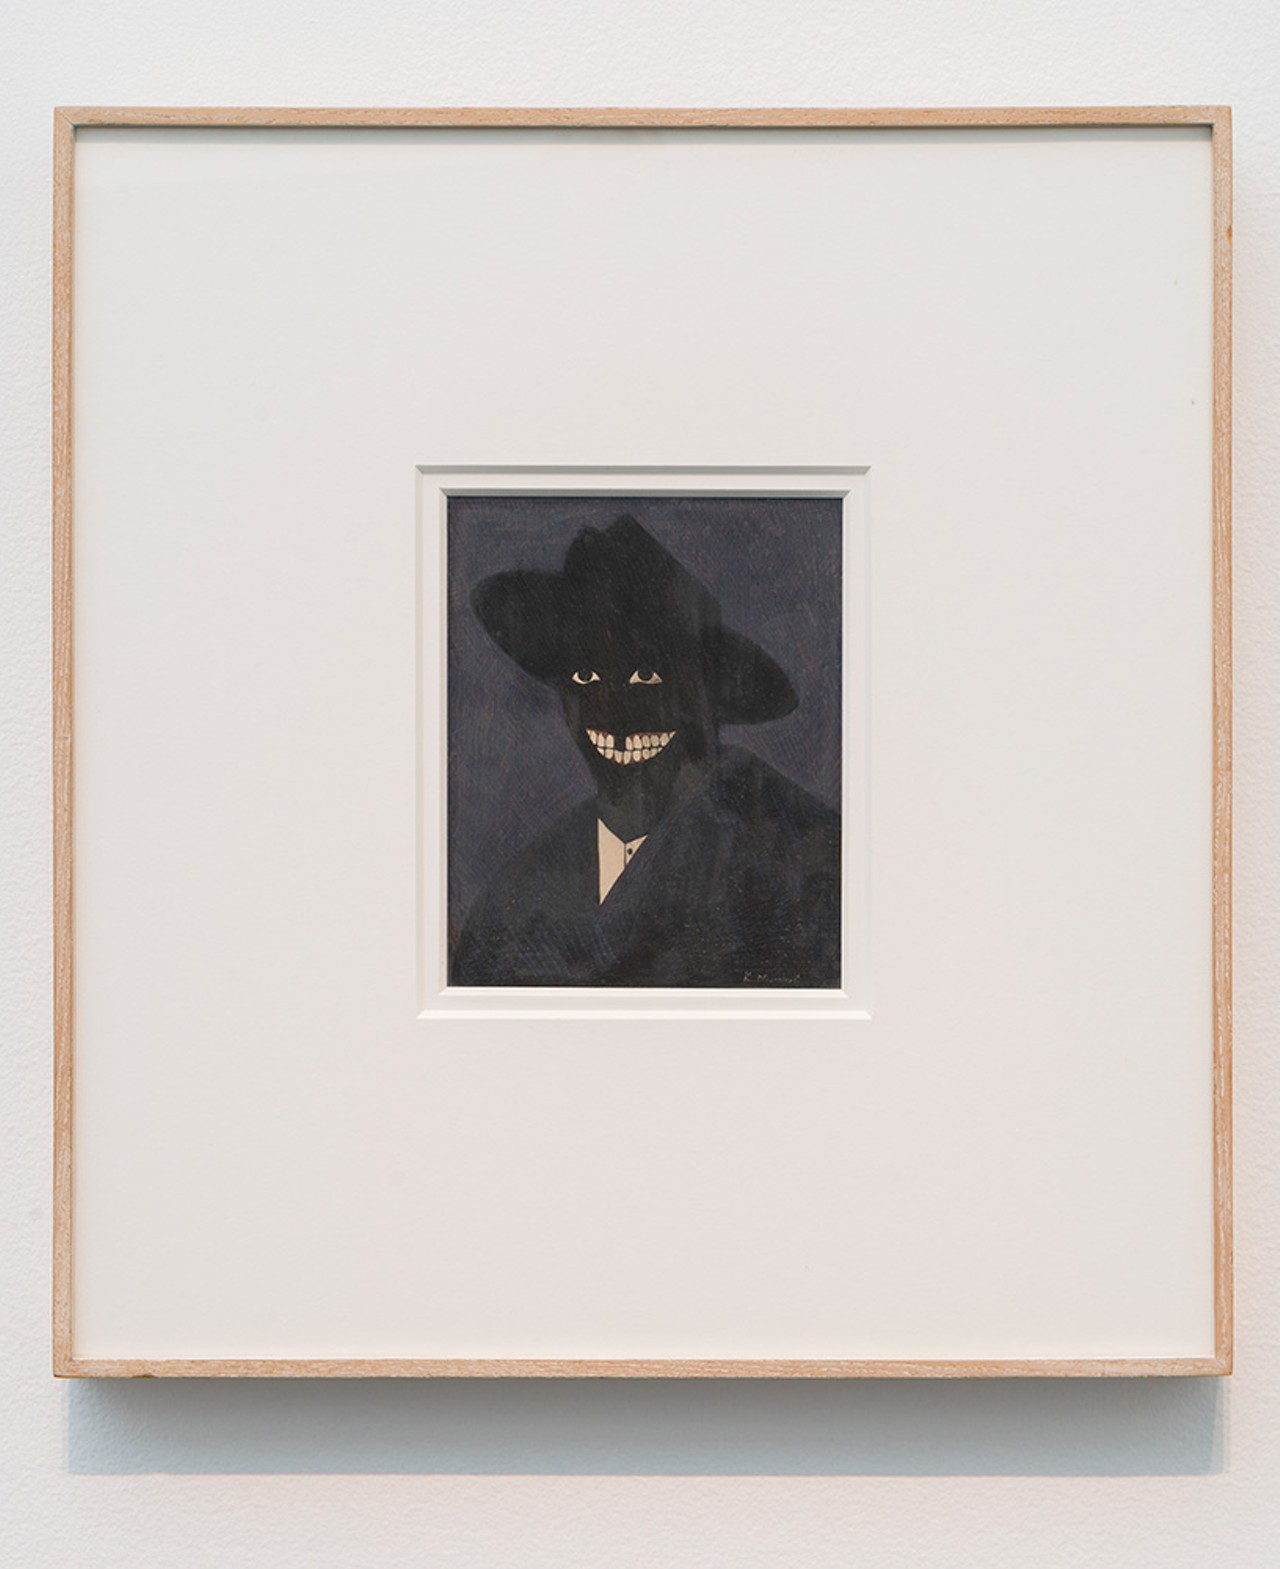 kerry james marshall reconstructs art history black americans recommended